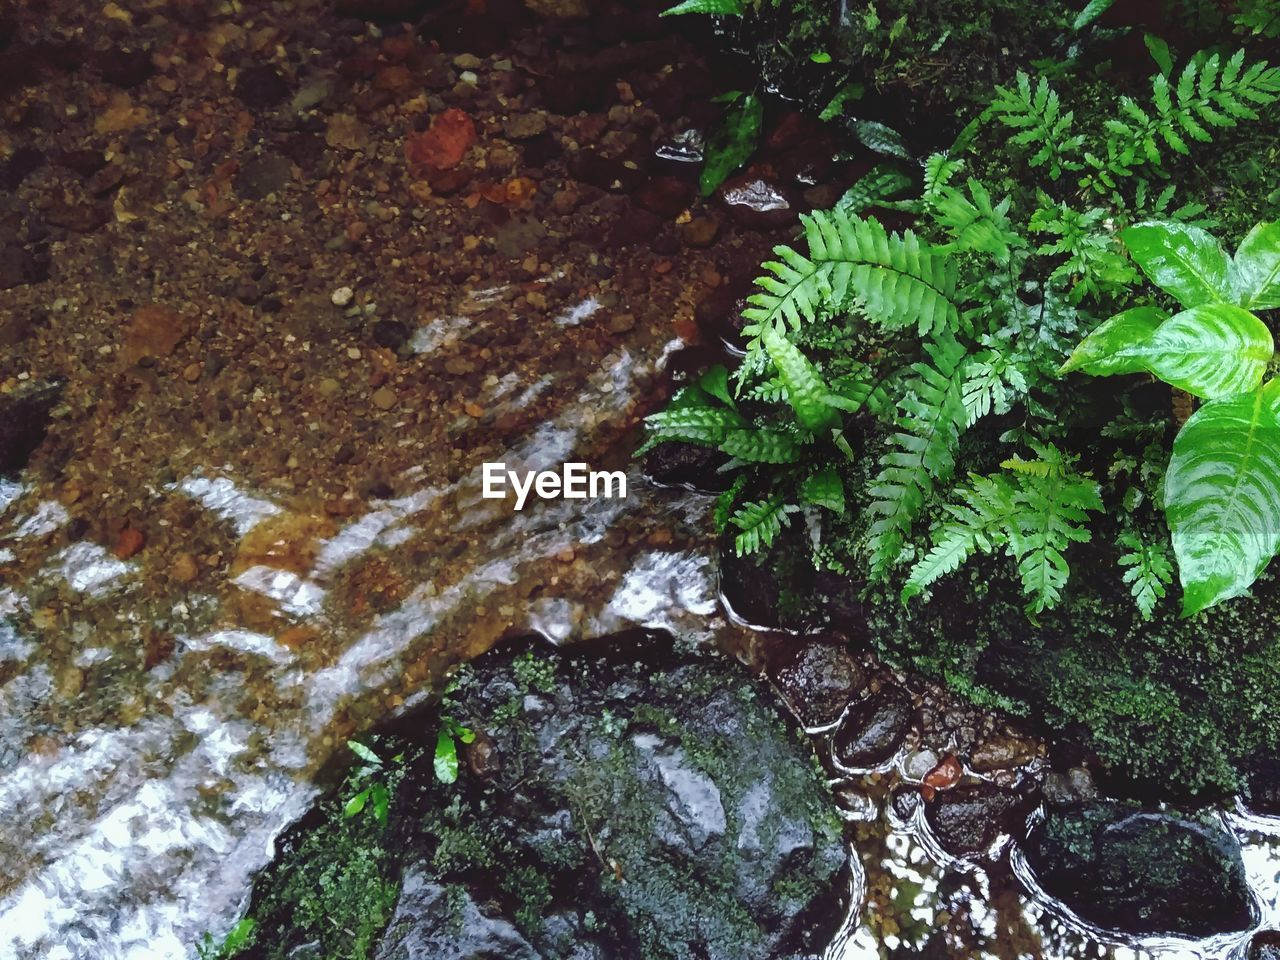 growth, nature, moss, plant, water, no people, outdoors, rock - object, tranquility, day, beauty in nature, leaf, close-up